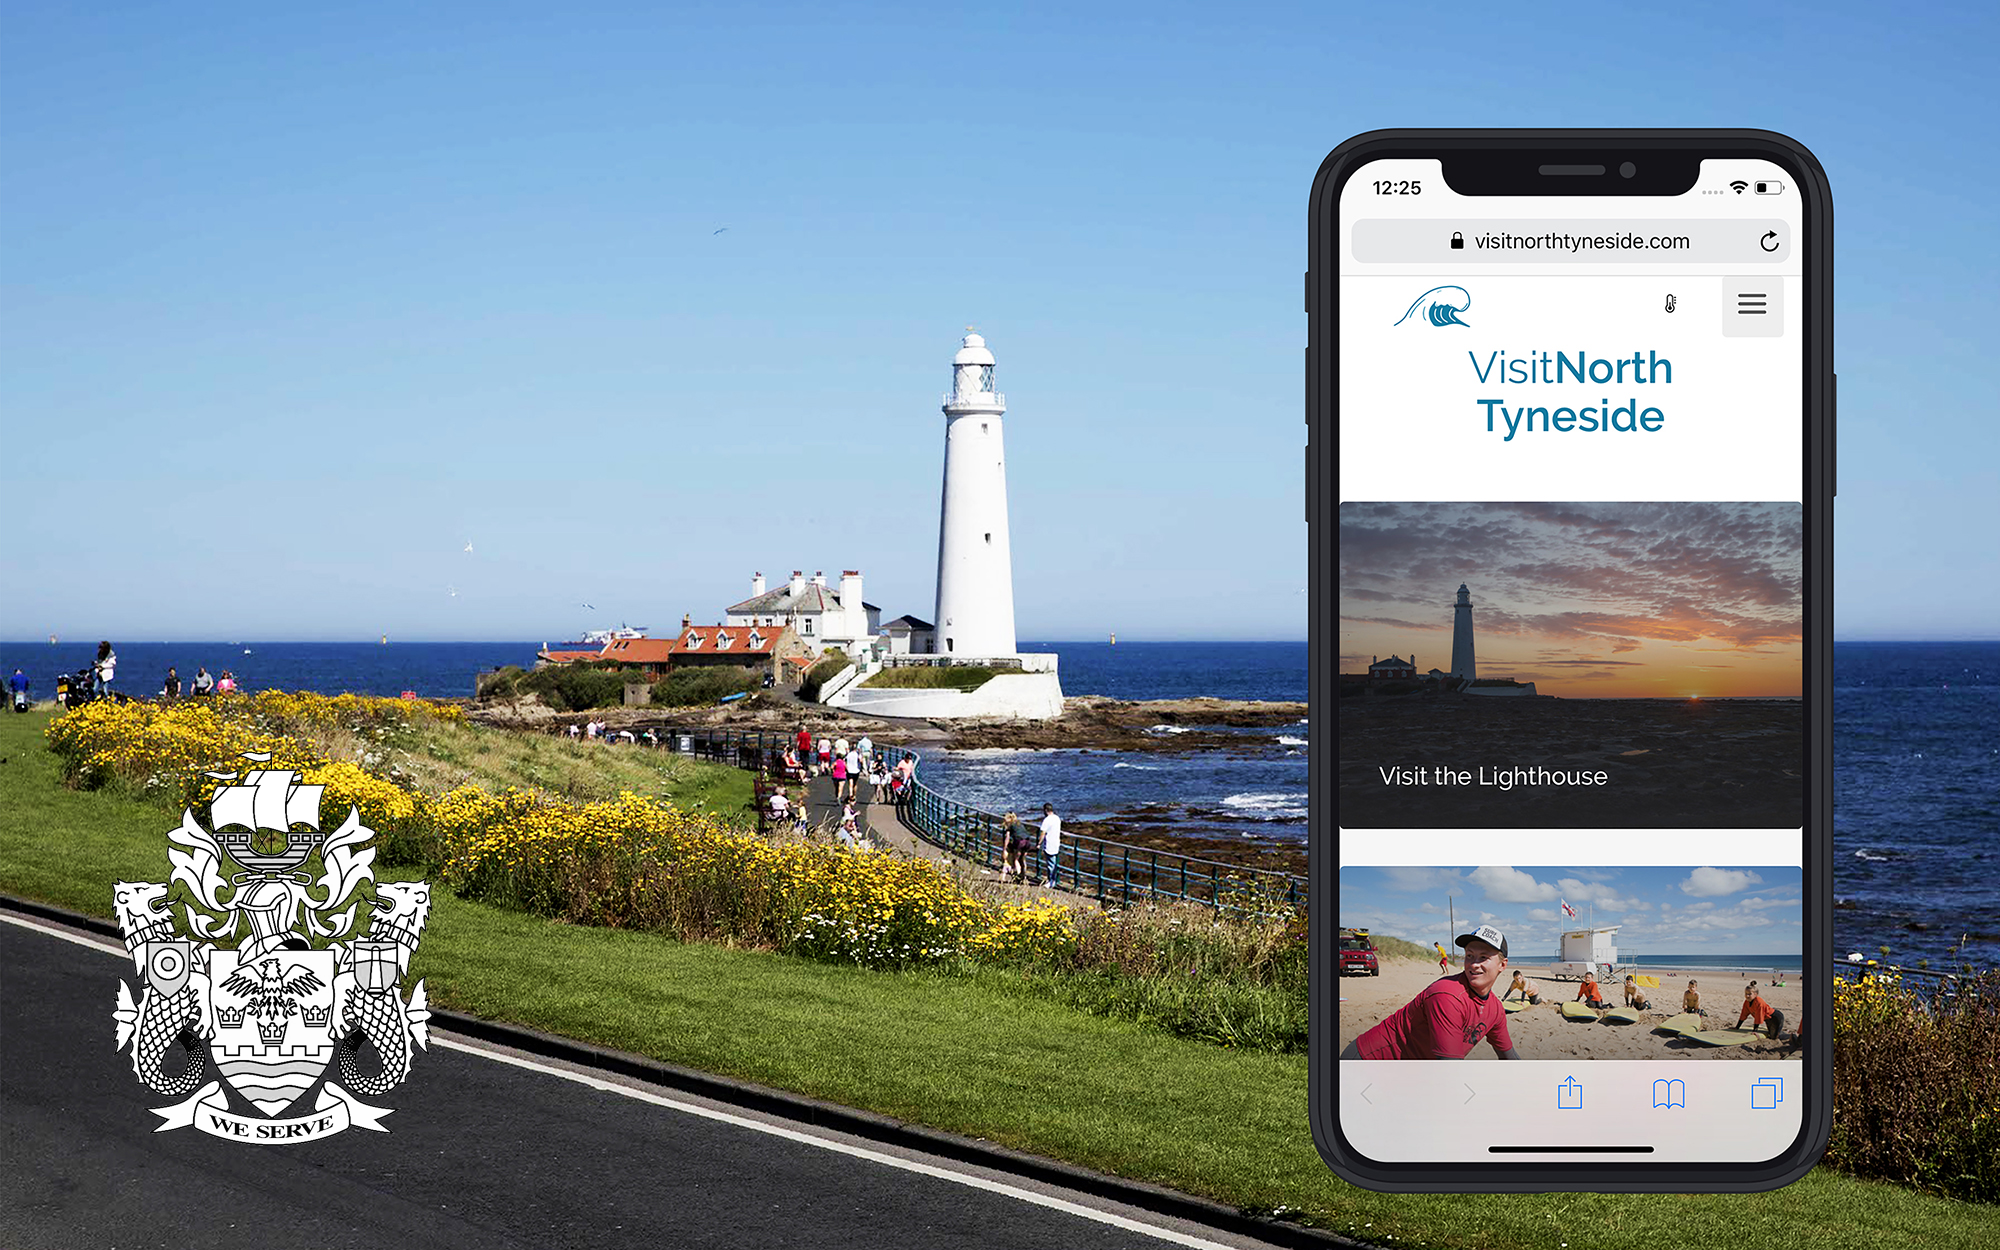 Visit North Tyneside image